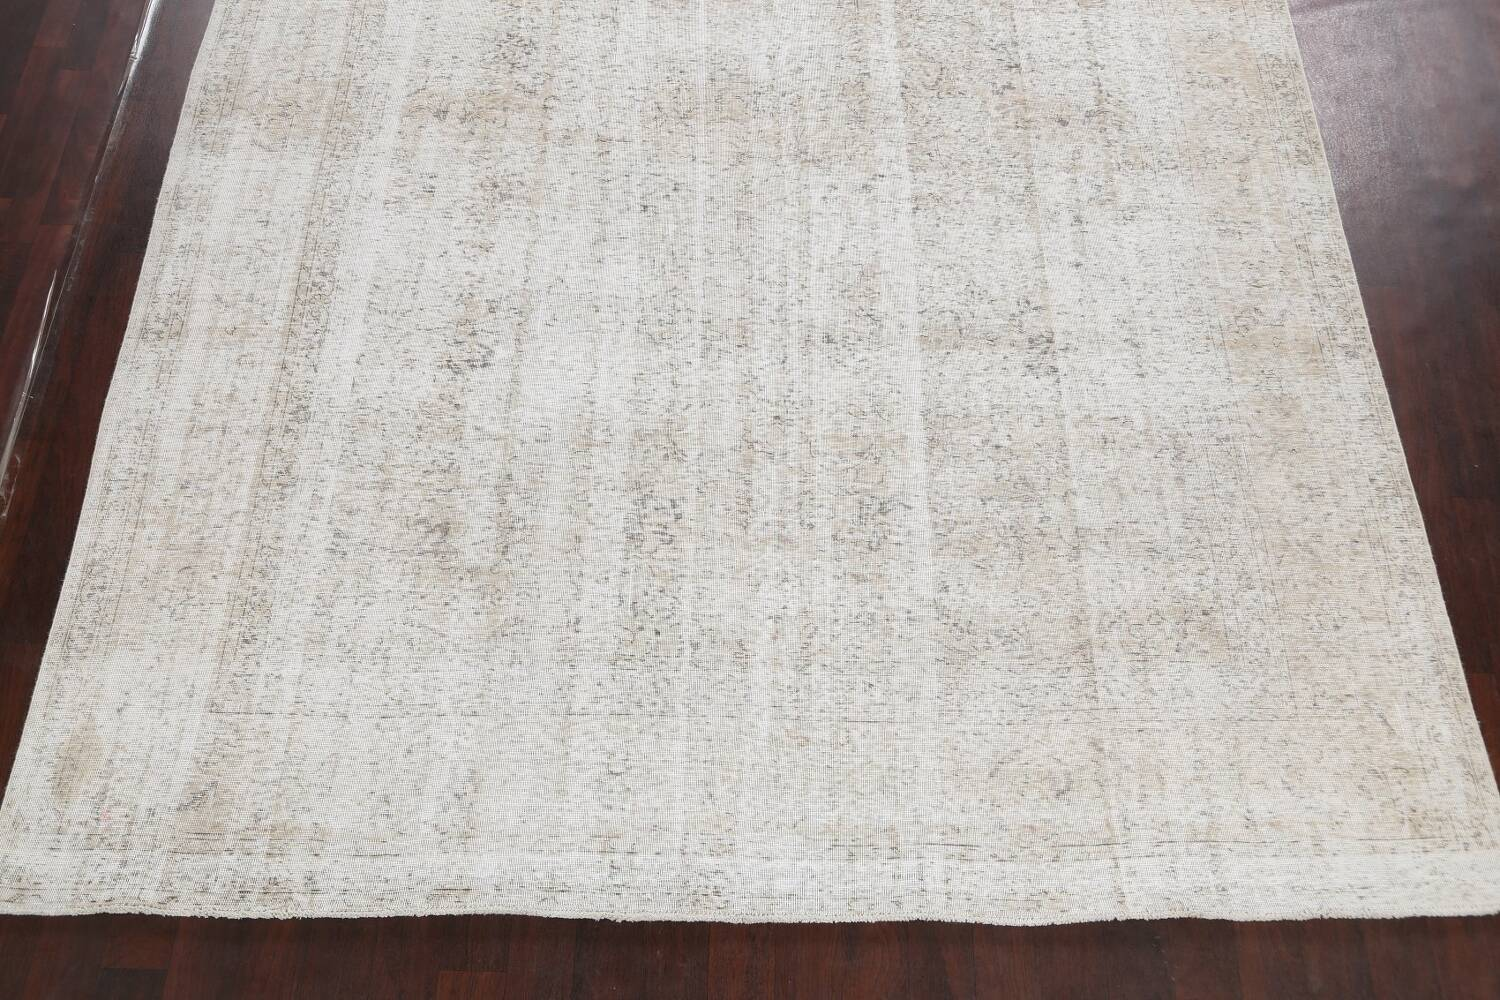 Antique Muted Vintage Distressed Oriental Area Rug 10x11 image 8